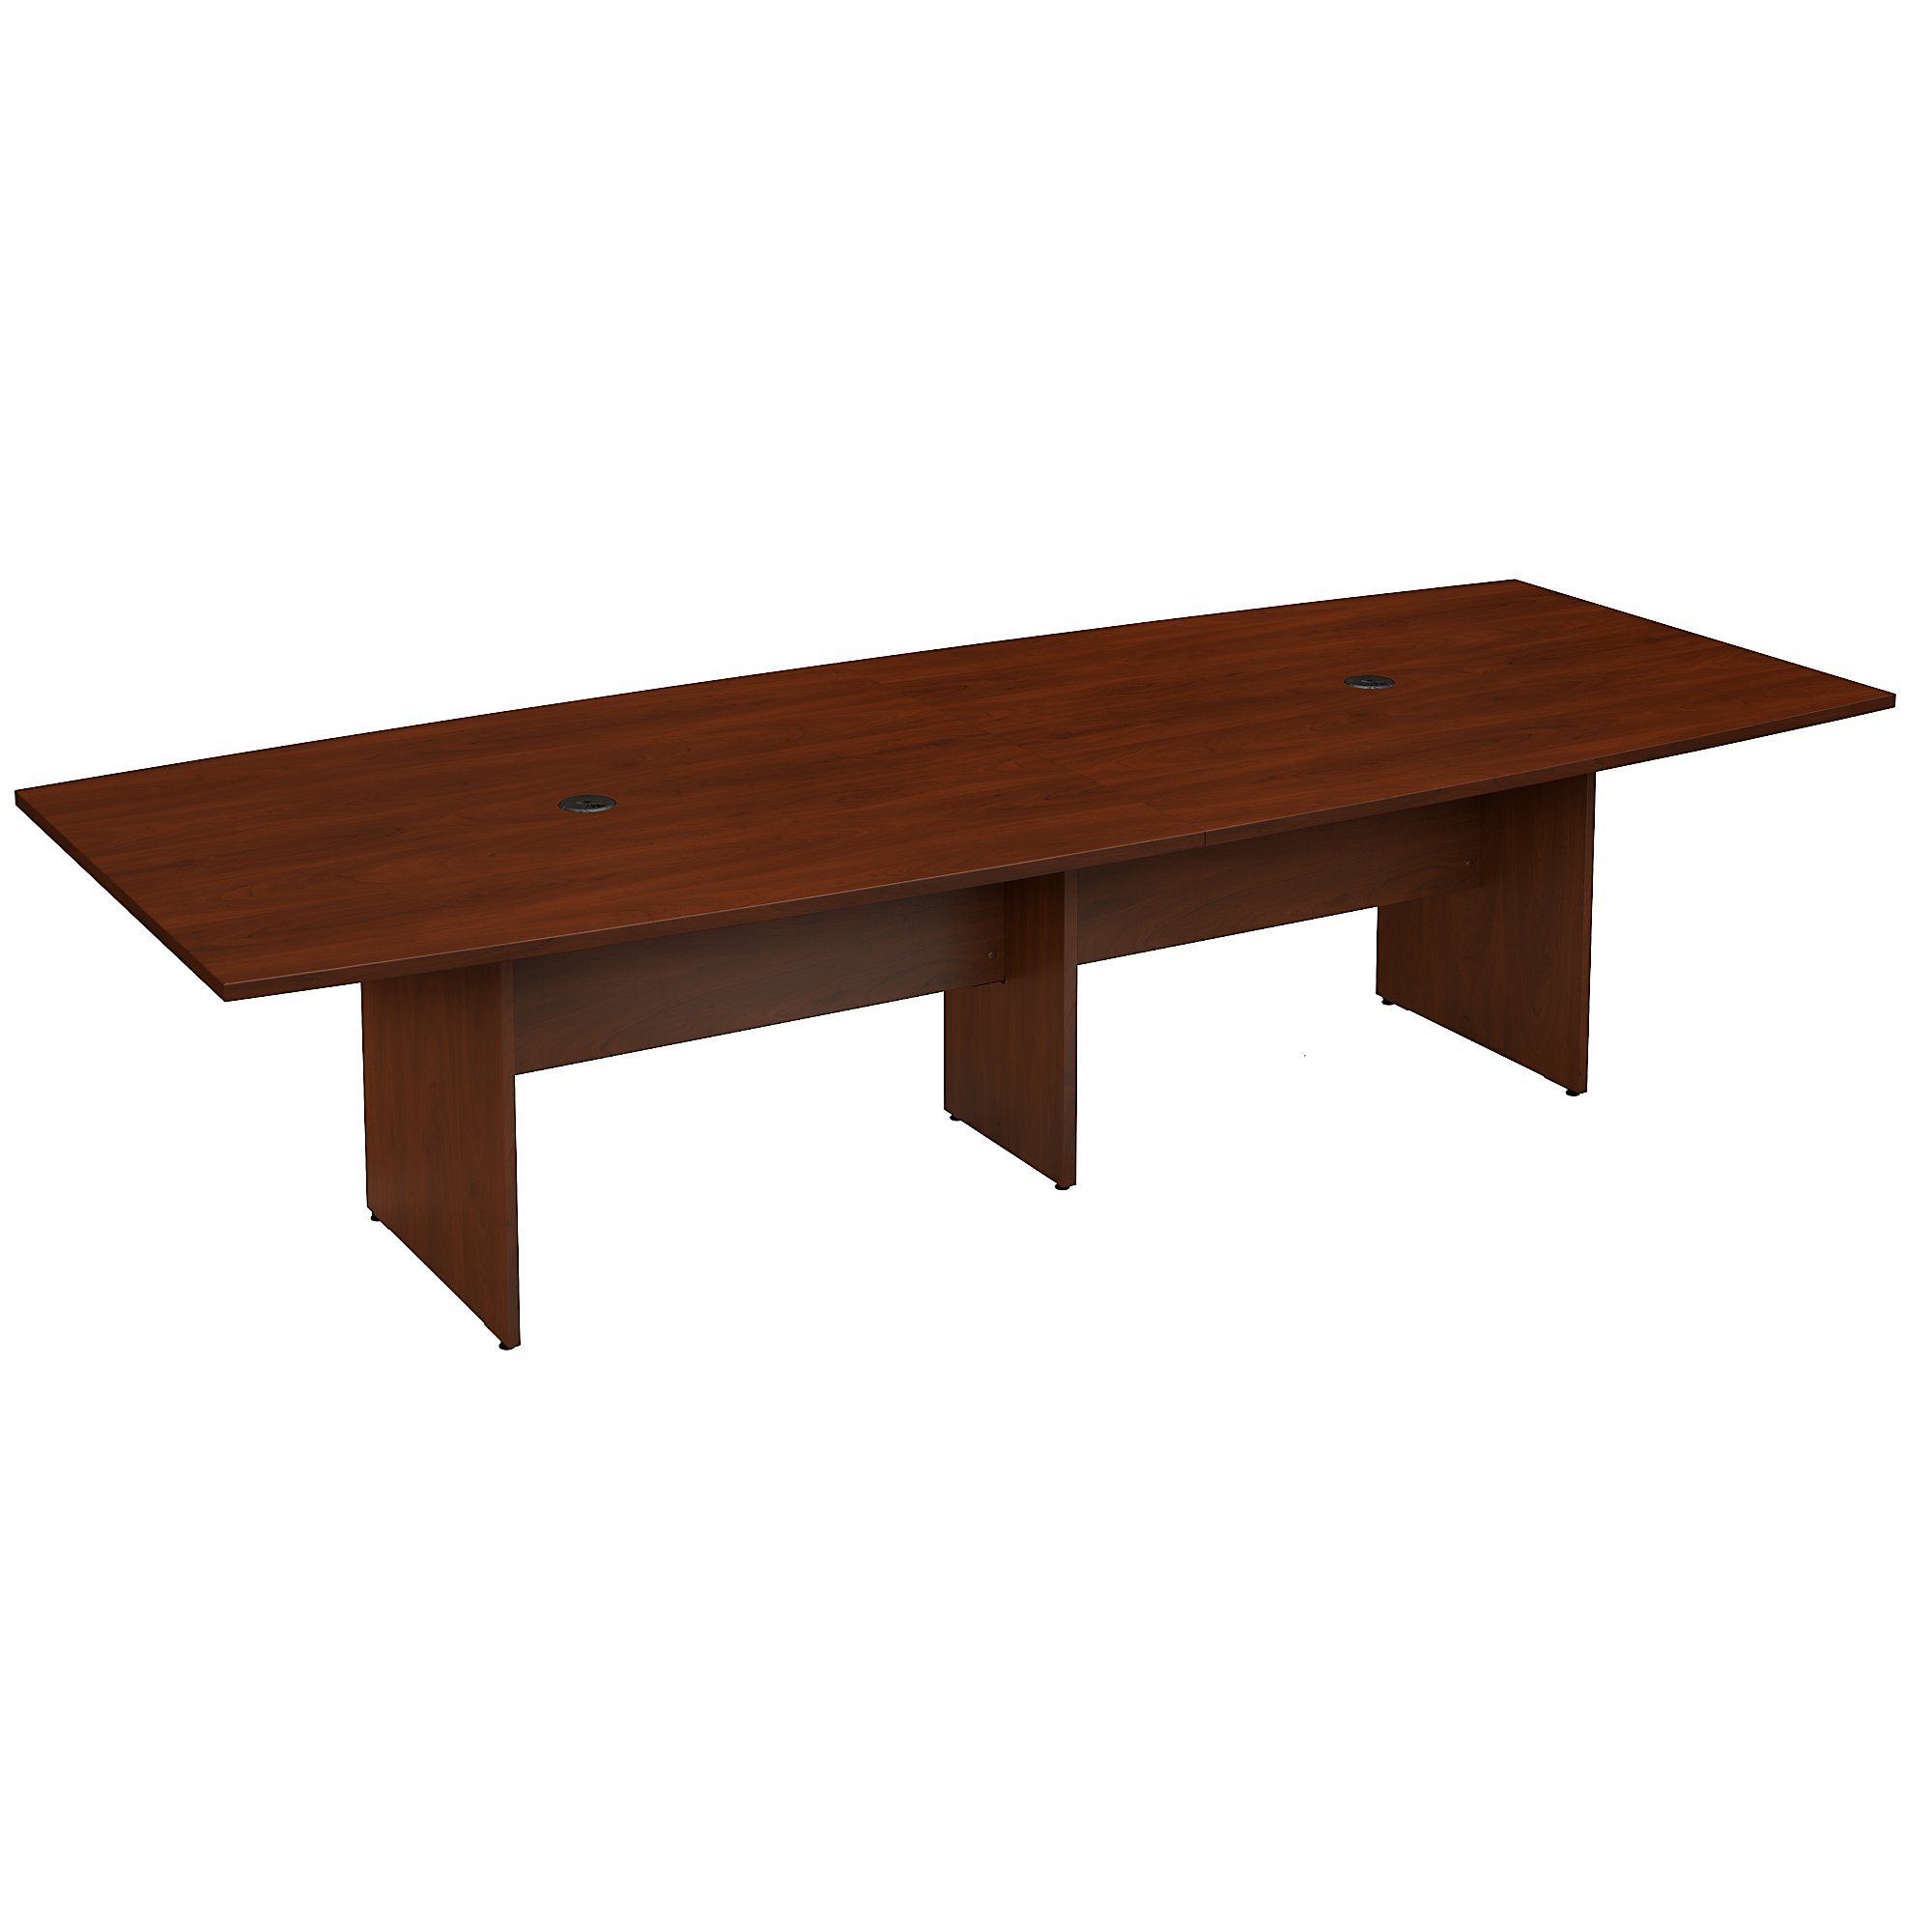 10' boat shaped conference table in hansen cherry